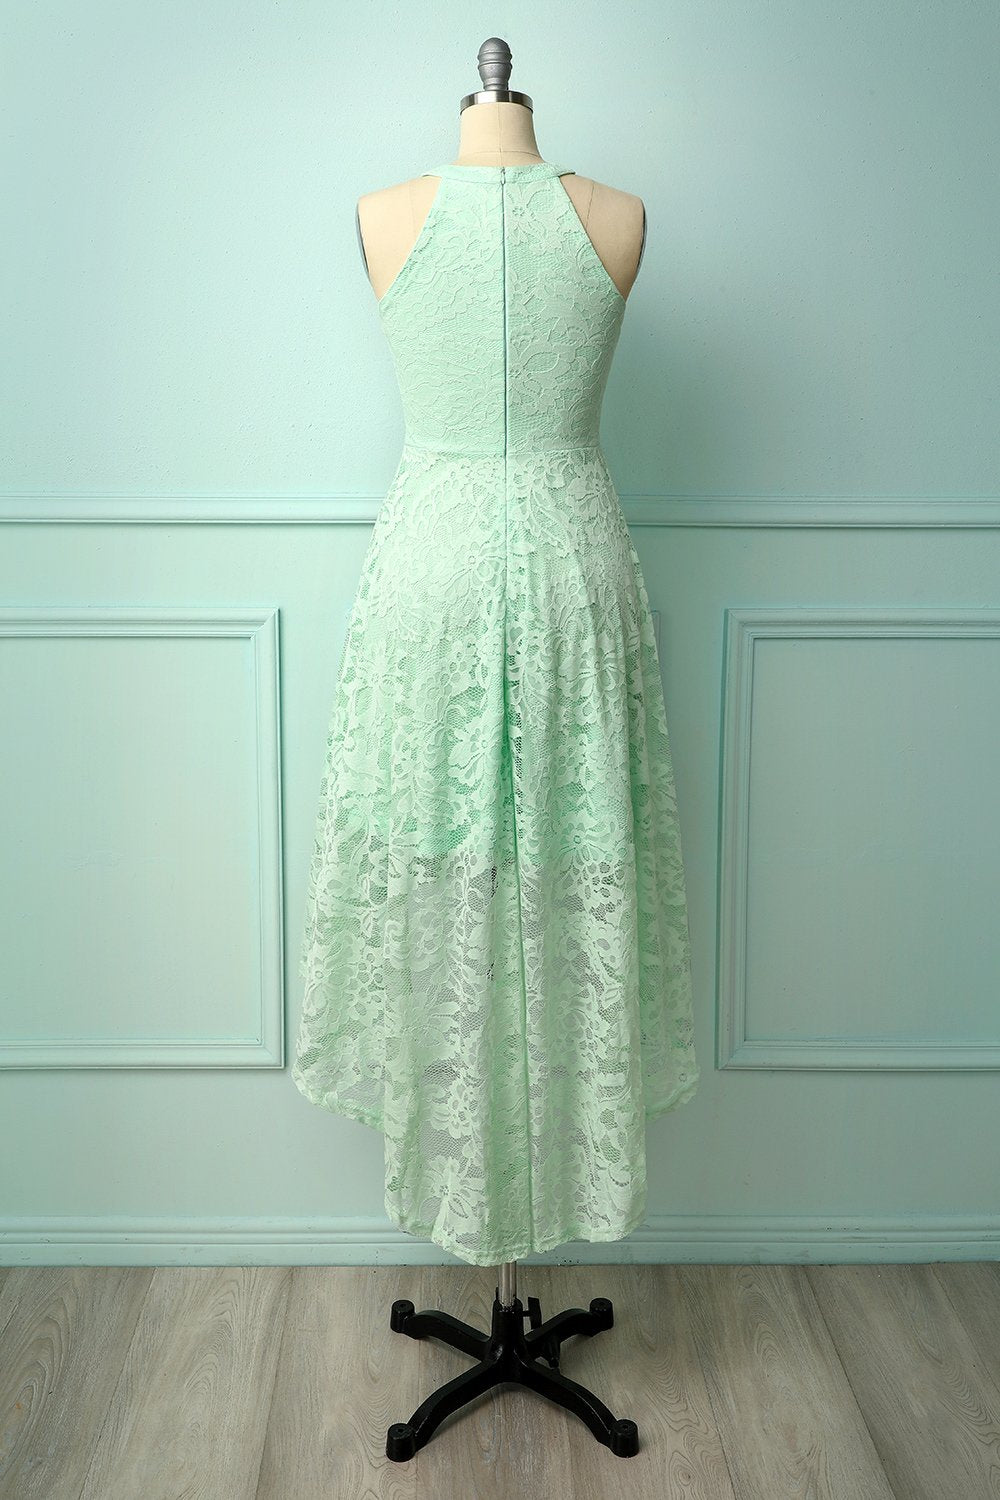 Asymmetric Mint Lace Dress